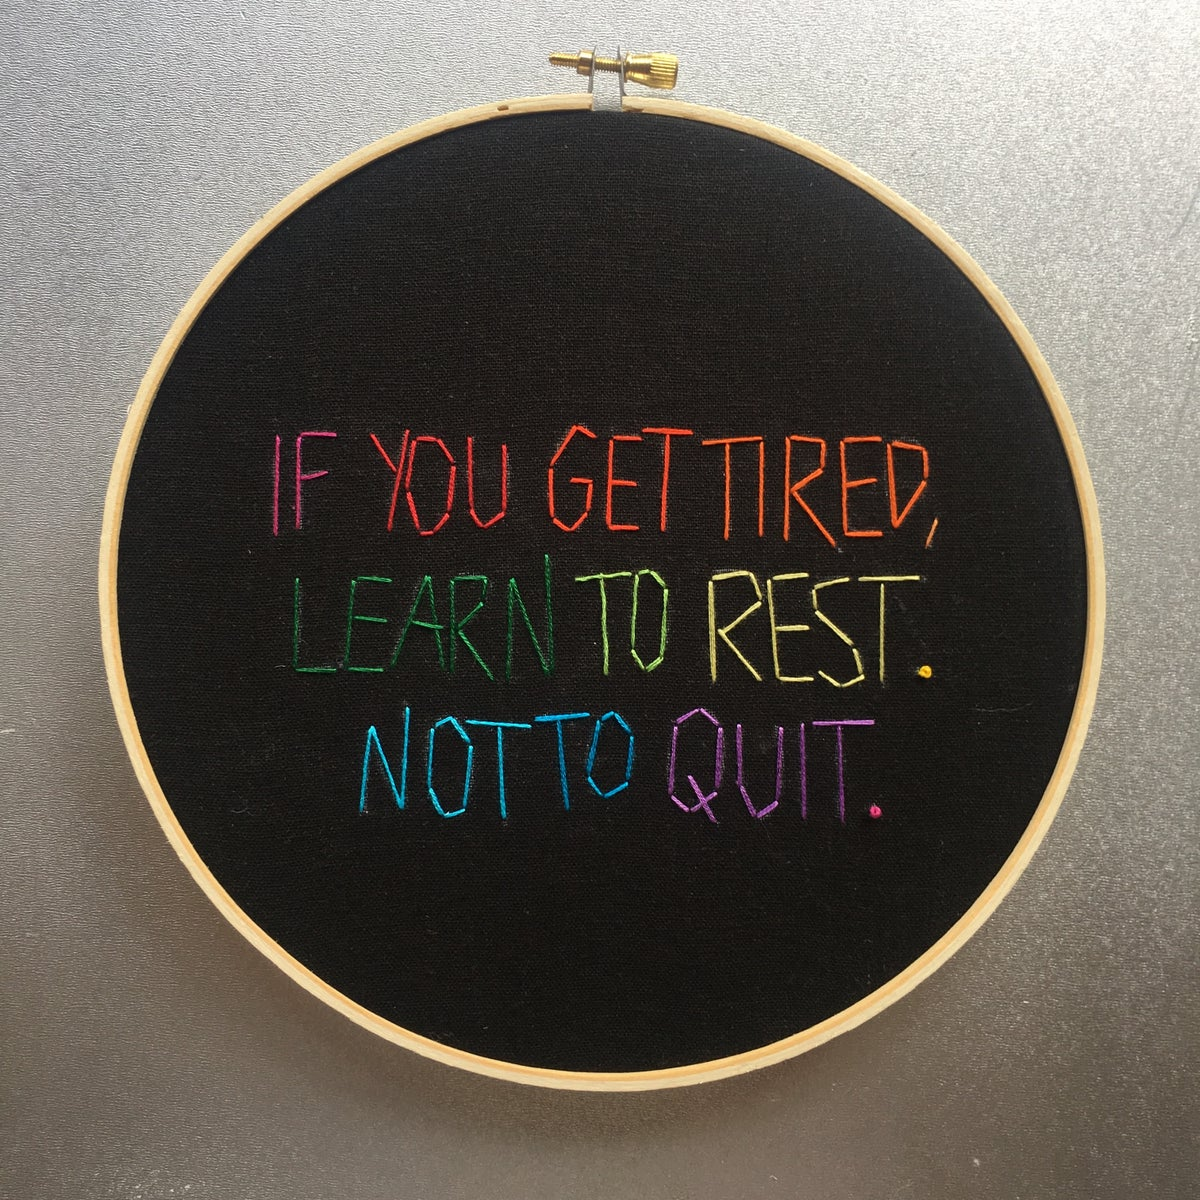 Image of Learn to rest